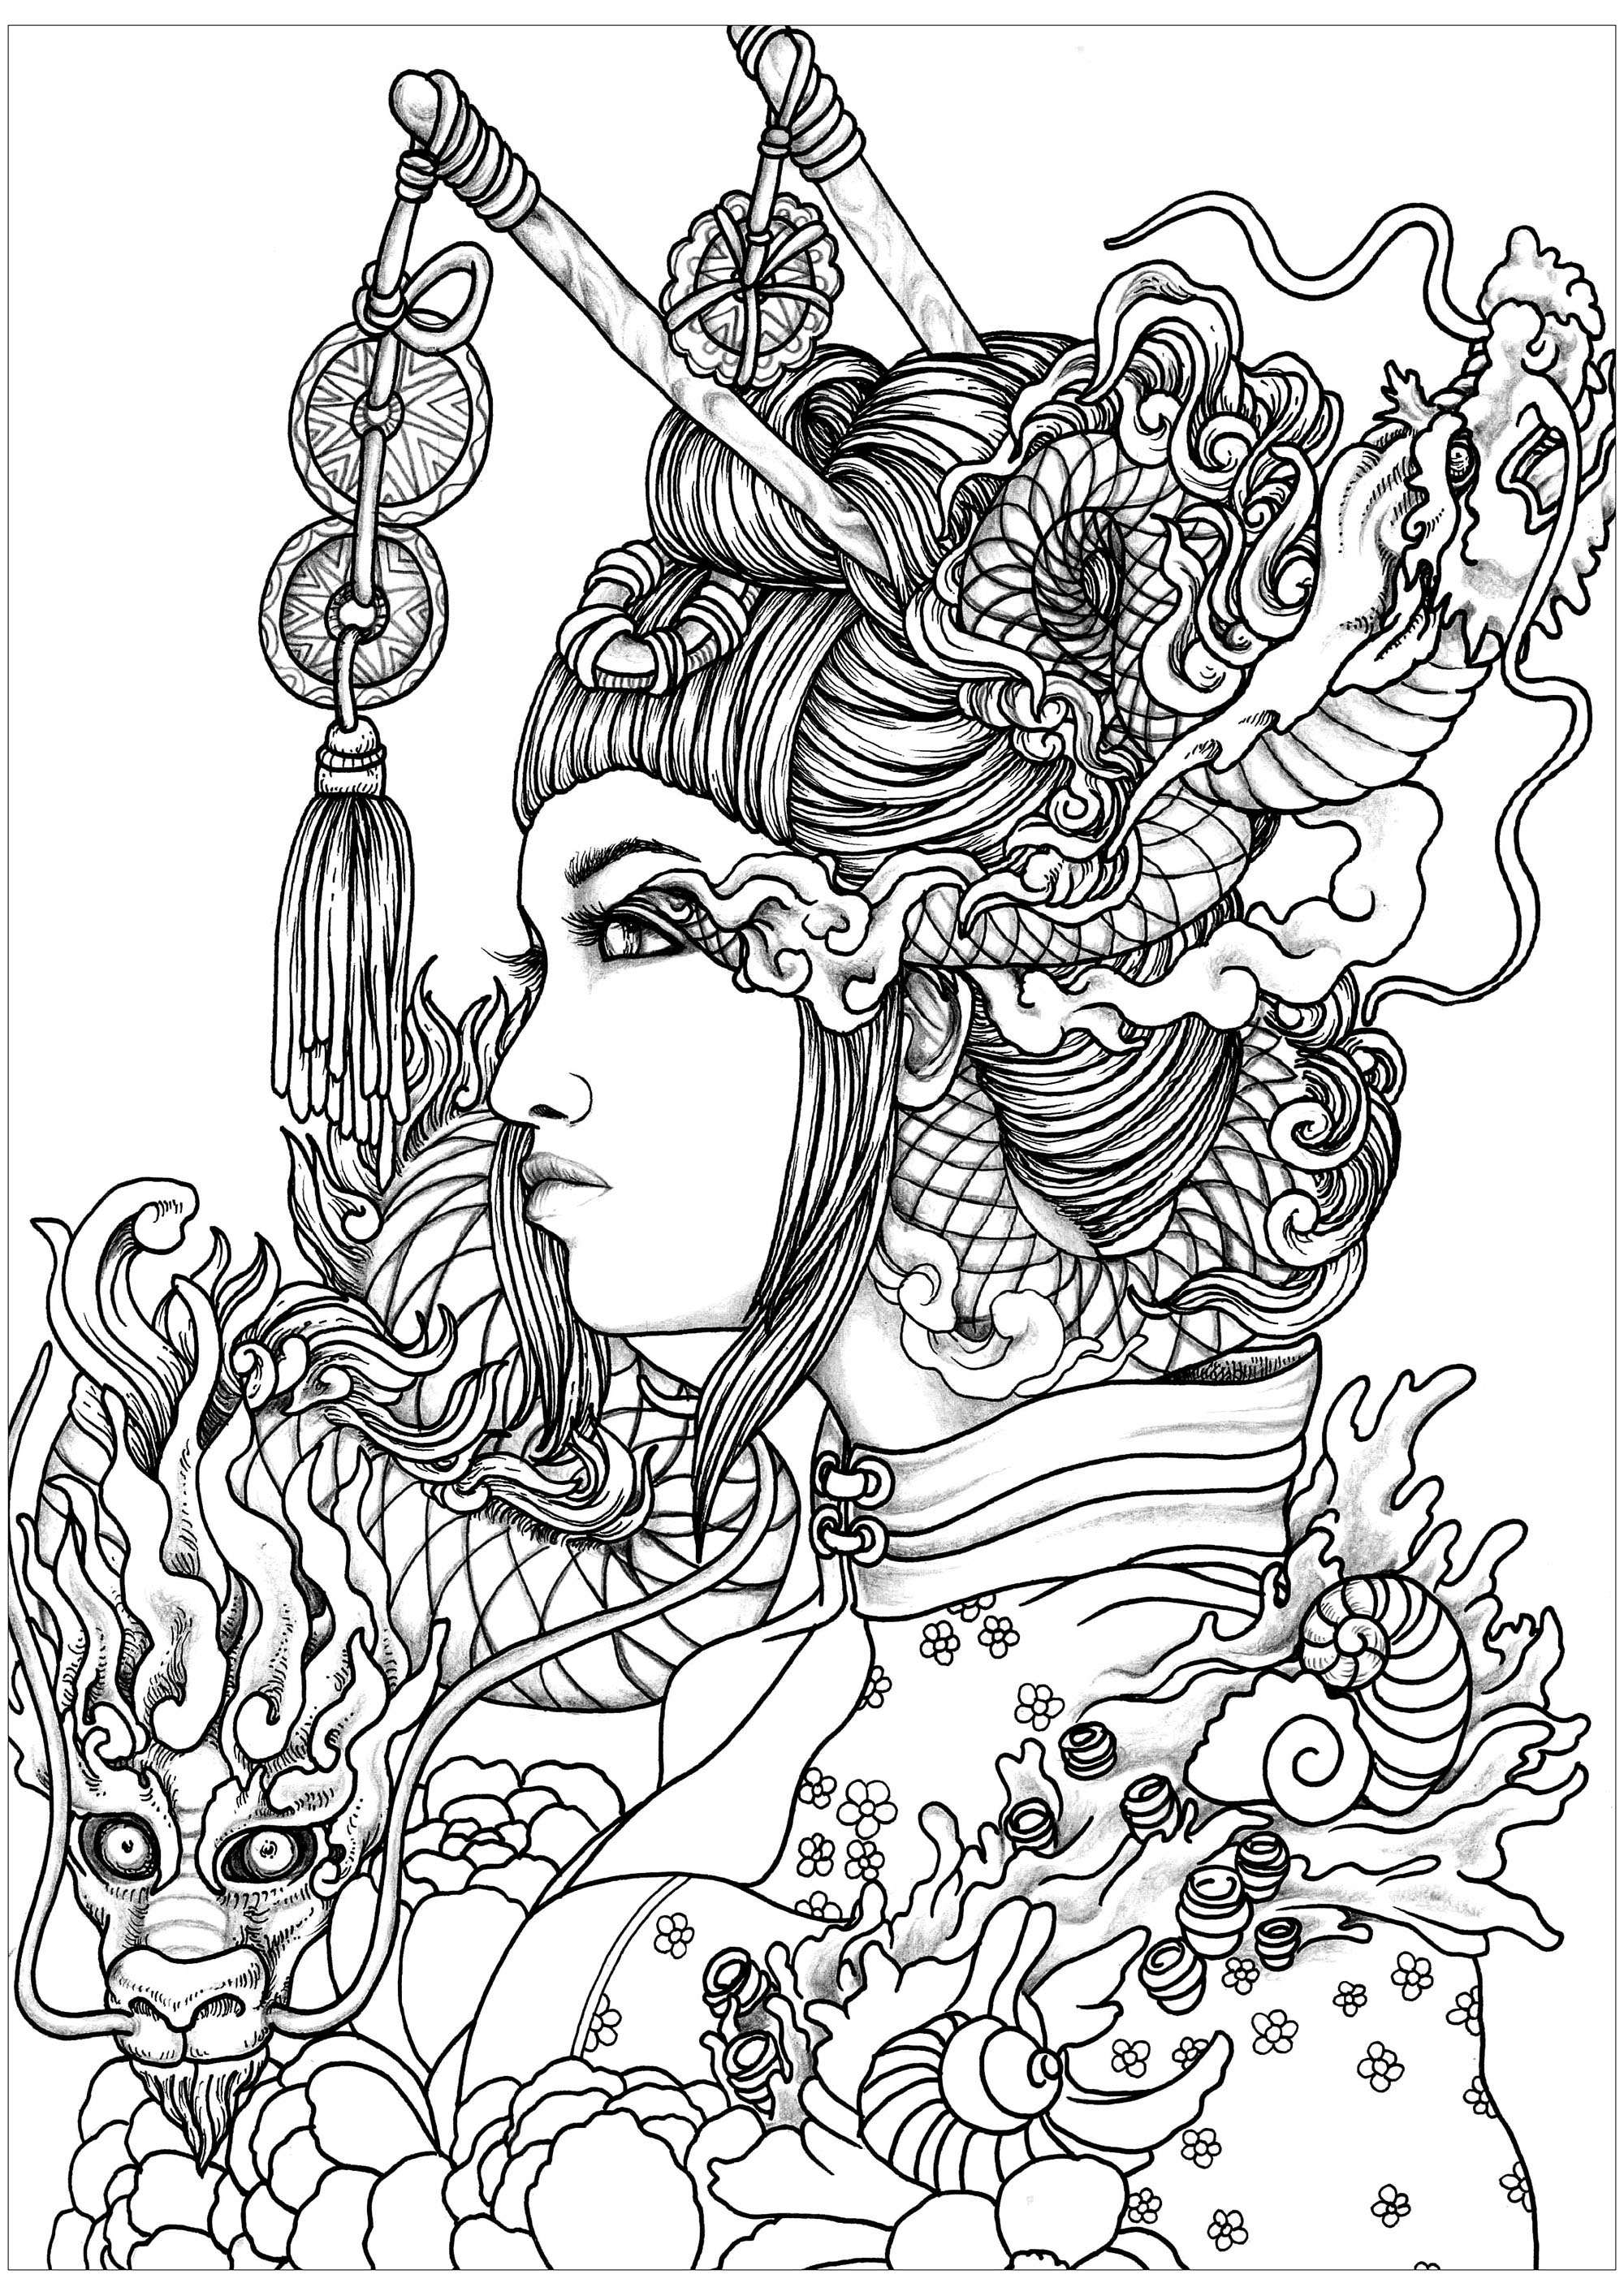 coloring pages for adults women beautiful woman coloring pages at getdrawings free download adults coloring pages for women